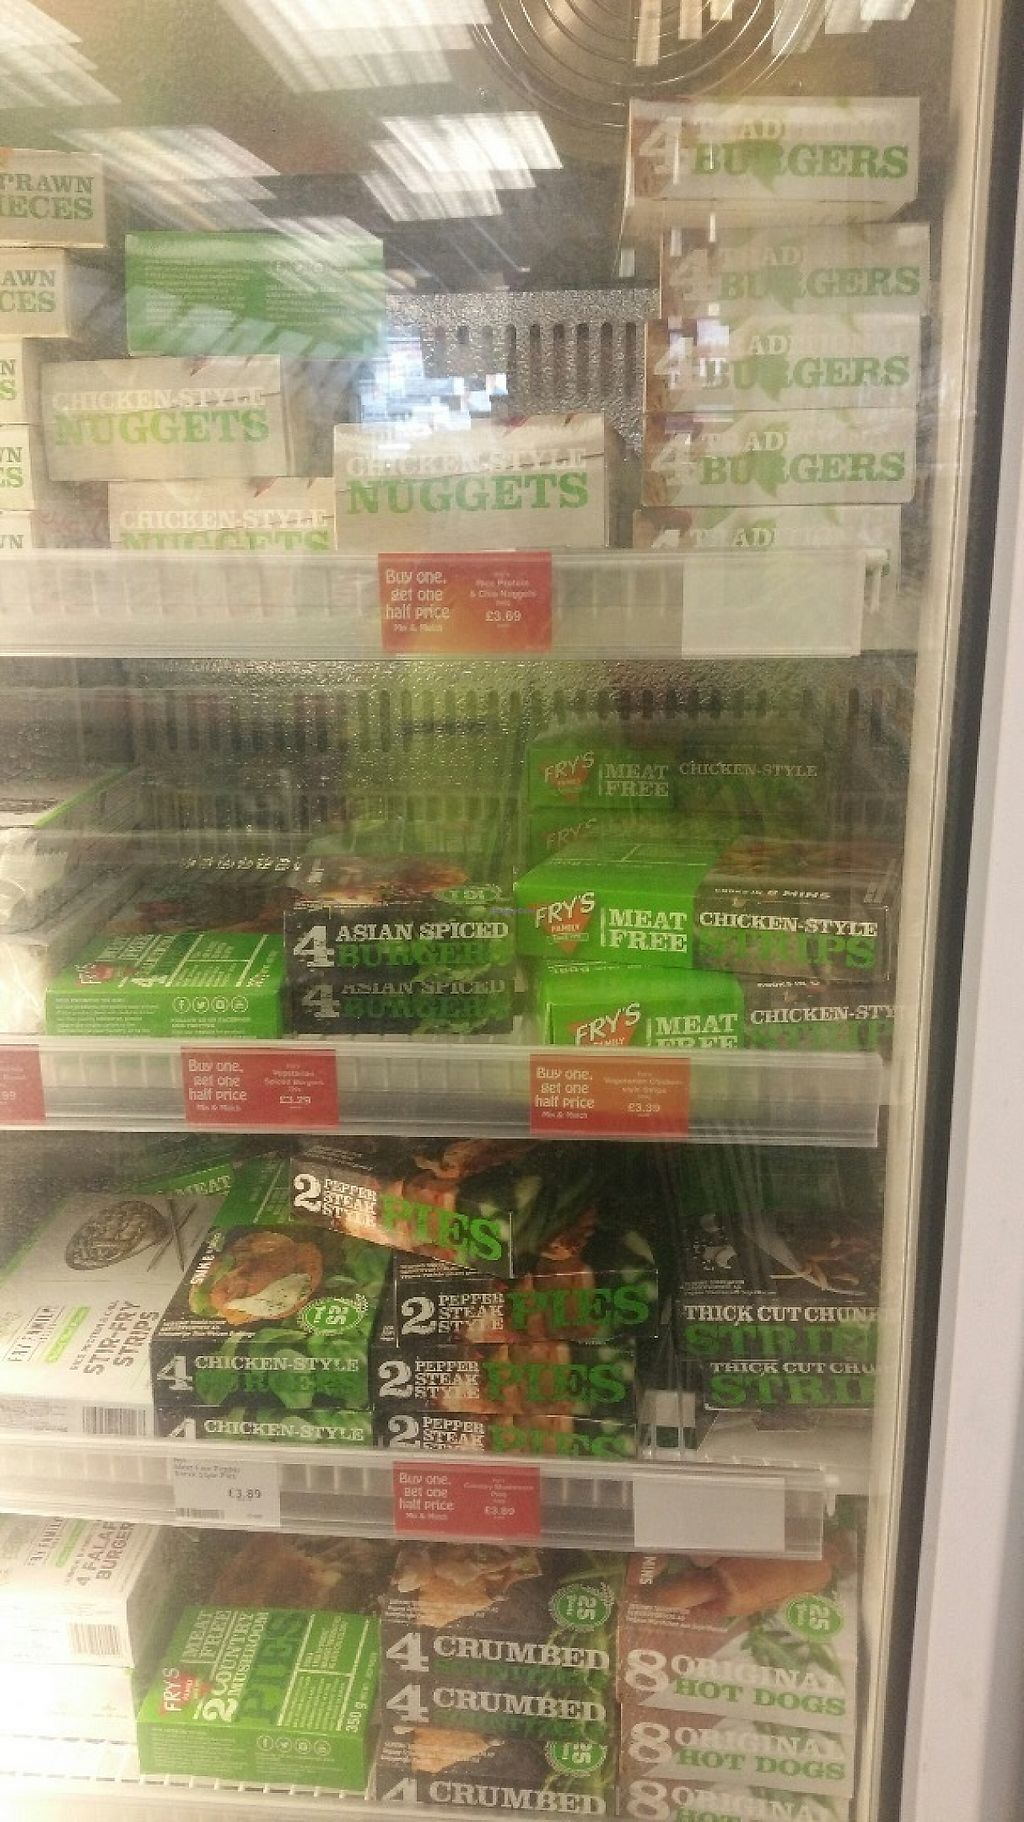 """Photo of Holland & Barrett - Putney  by <a href=""""/members/profile/jollypig"""">jollypig</a> <br/>In the freezer <br/> May 1, 2017  - <a href='/contact/abuse/image/85334/254641'>Report</a>"""